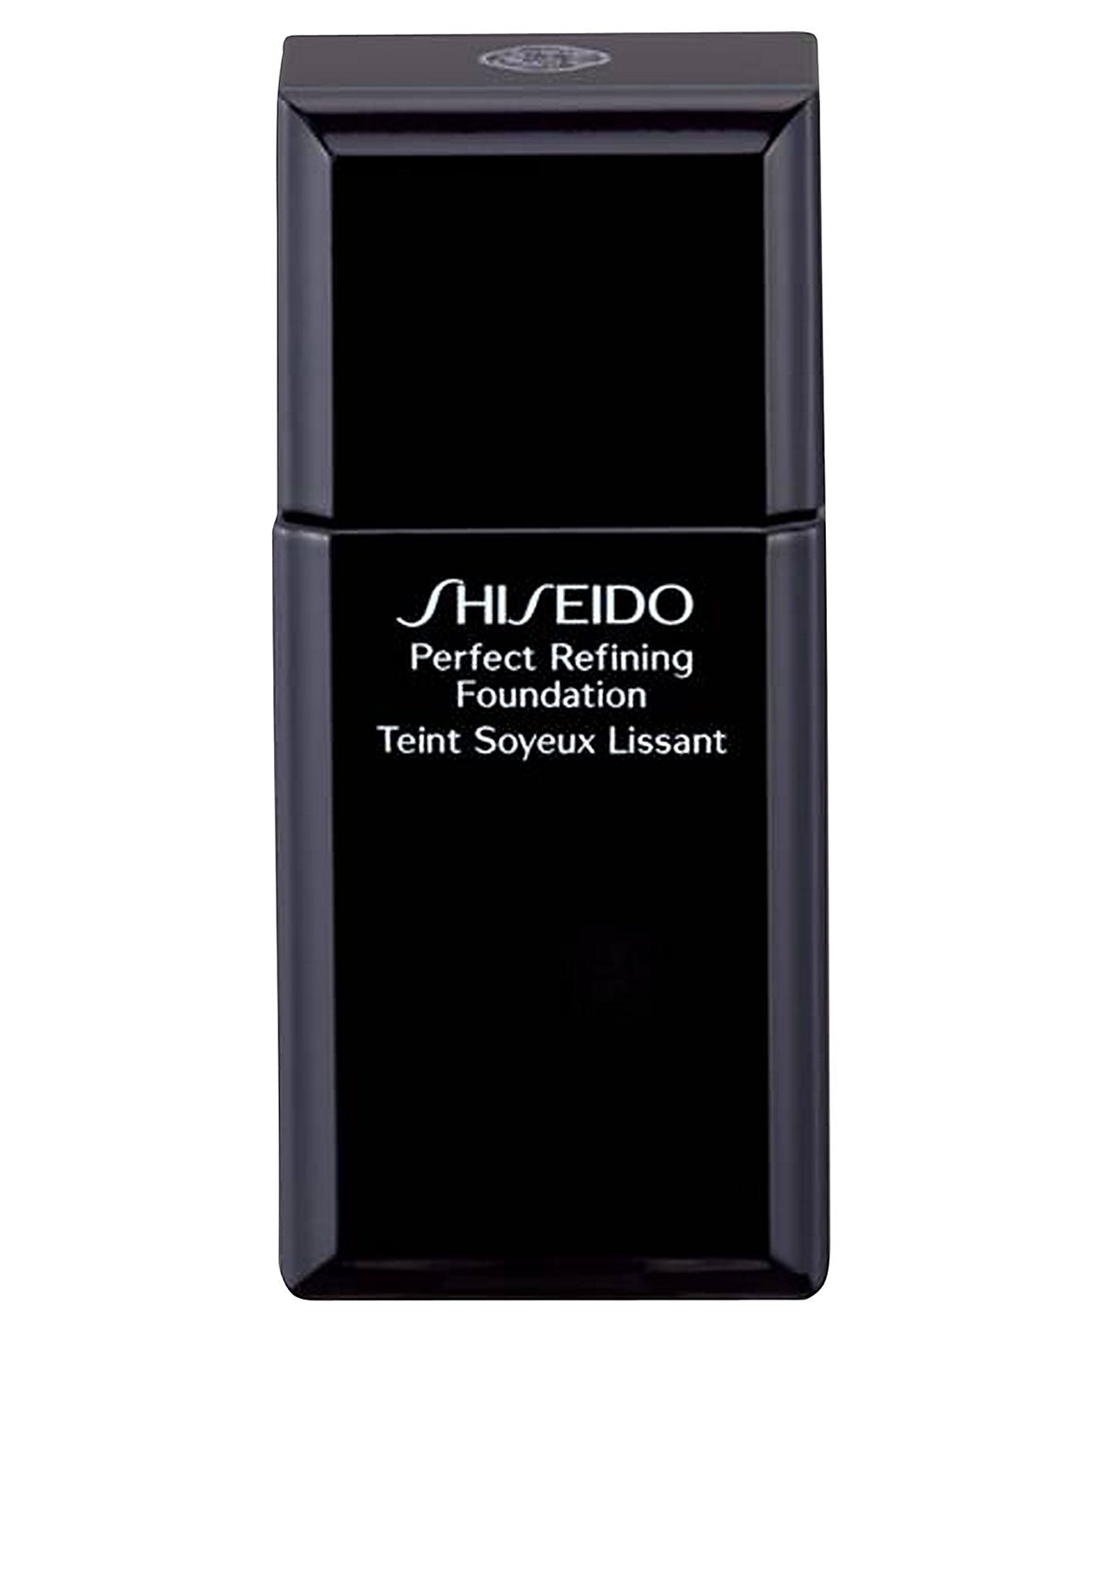 Shiseido Perfect Refining Foundation, Natural Light Ivory I20